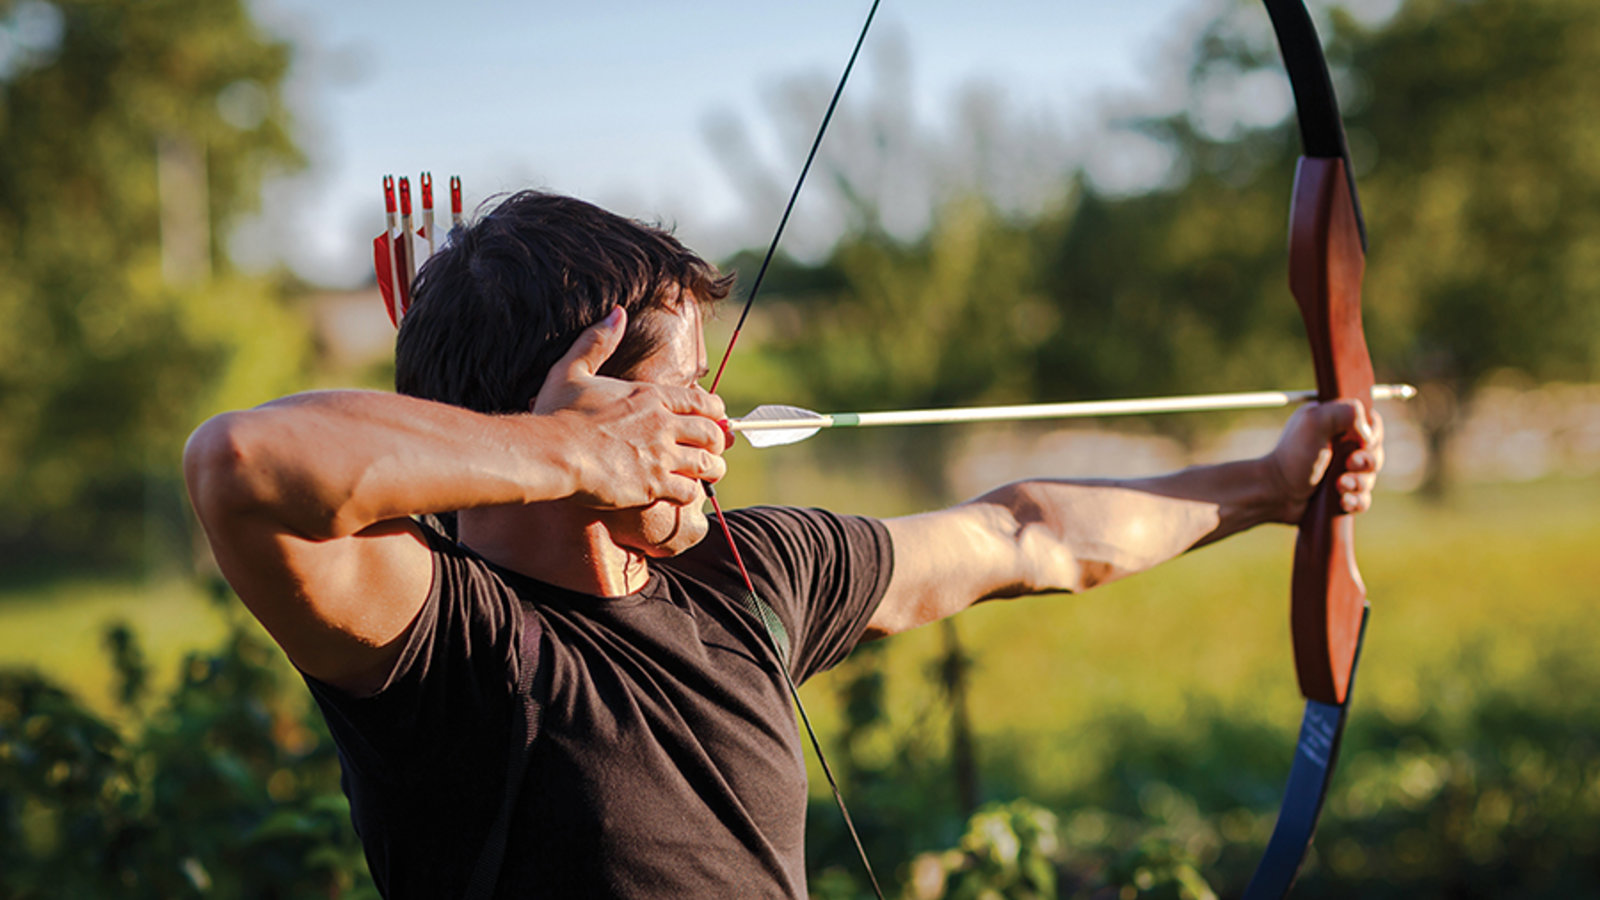 The Bow and Arrow